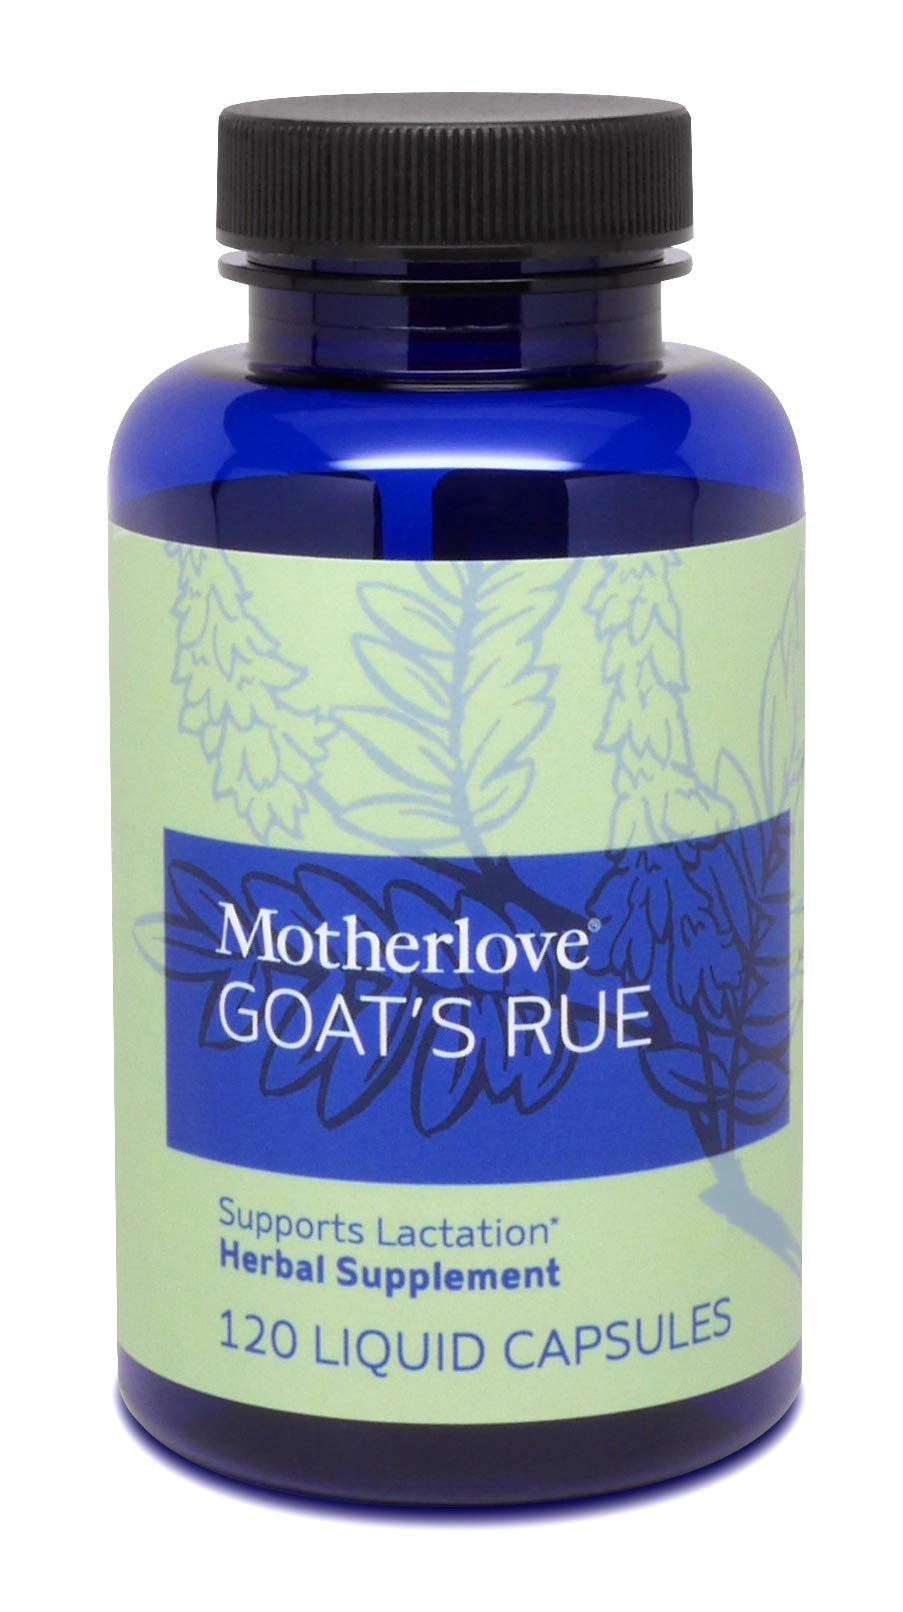 Motherlove - Goat's Rue, Potent Herbal Breastfeeding Supplement, Supports Mammary Tissue Development & Breast Milk Supply, Alcohol-Free Vegan Liquid Capsules with Organic Goat's Rue Herb, 120 ct.